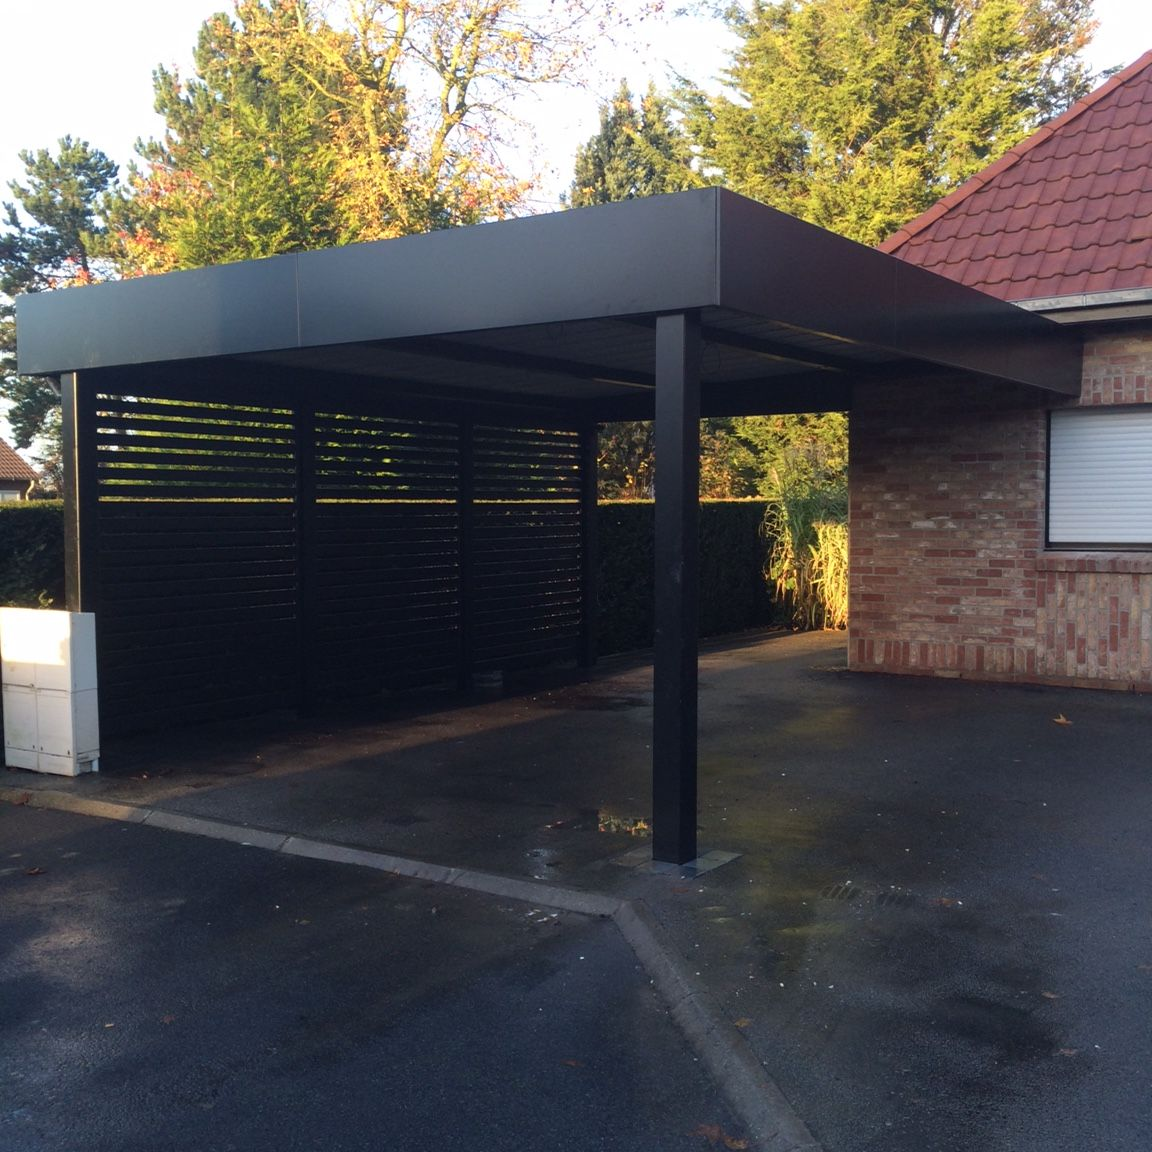 Carport Aluminium Tori Portails Carport Makeover Carport Designs Pergola Carport